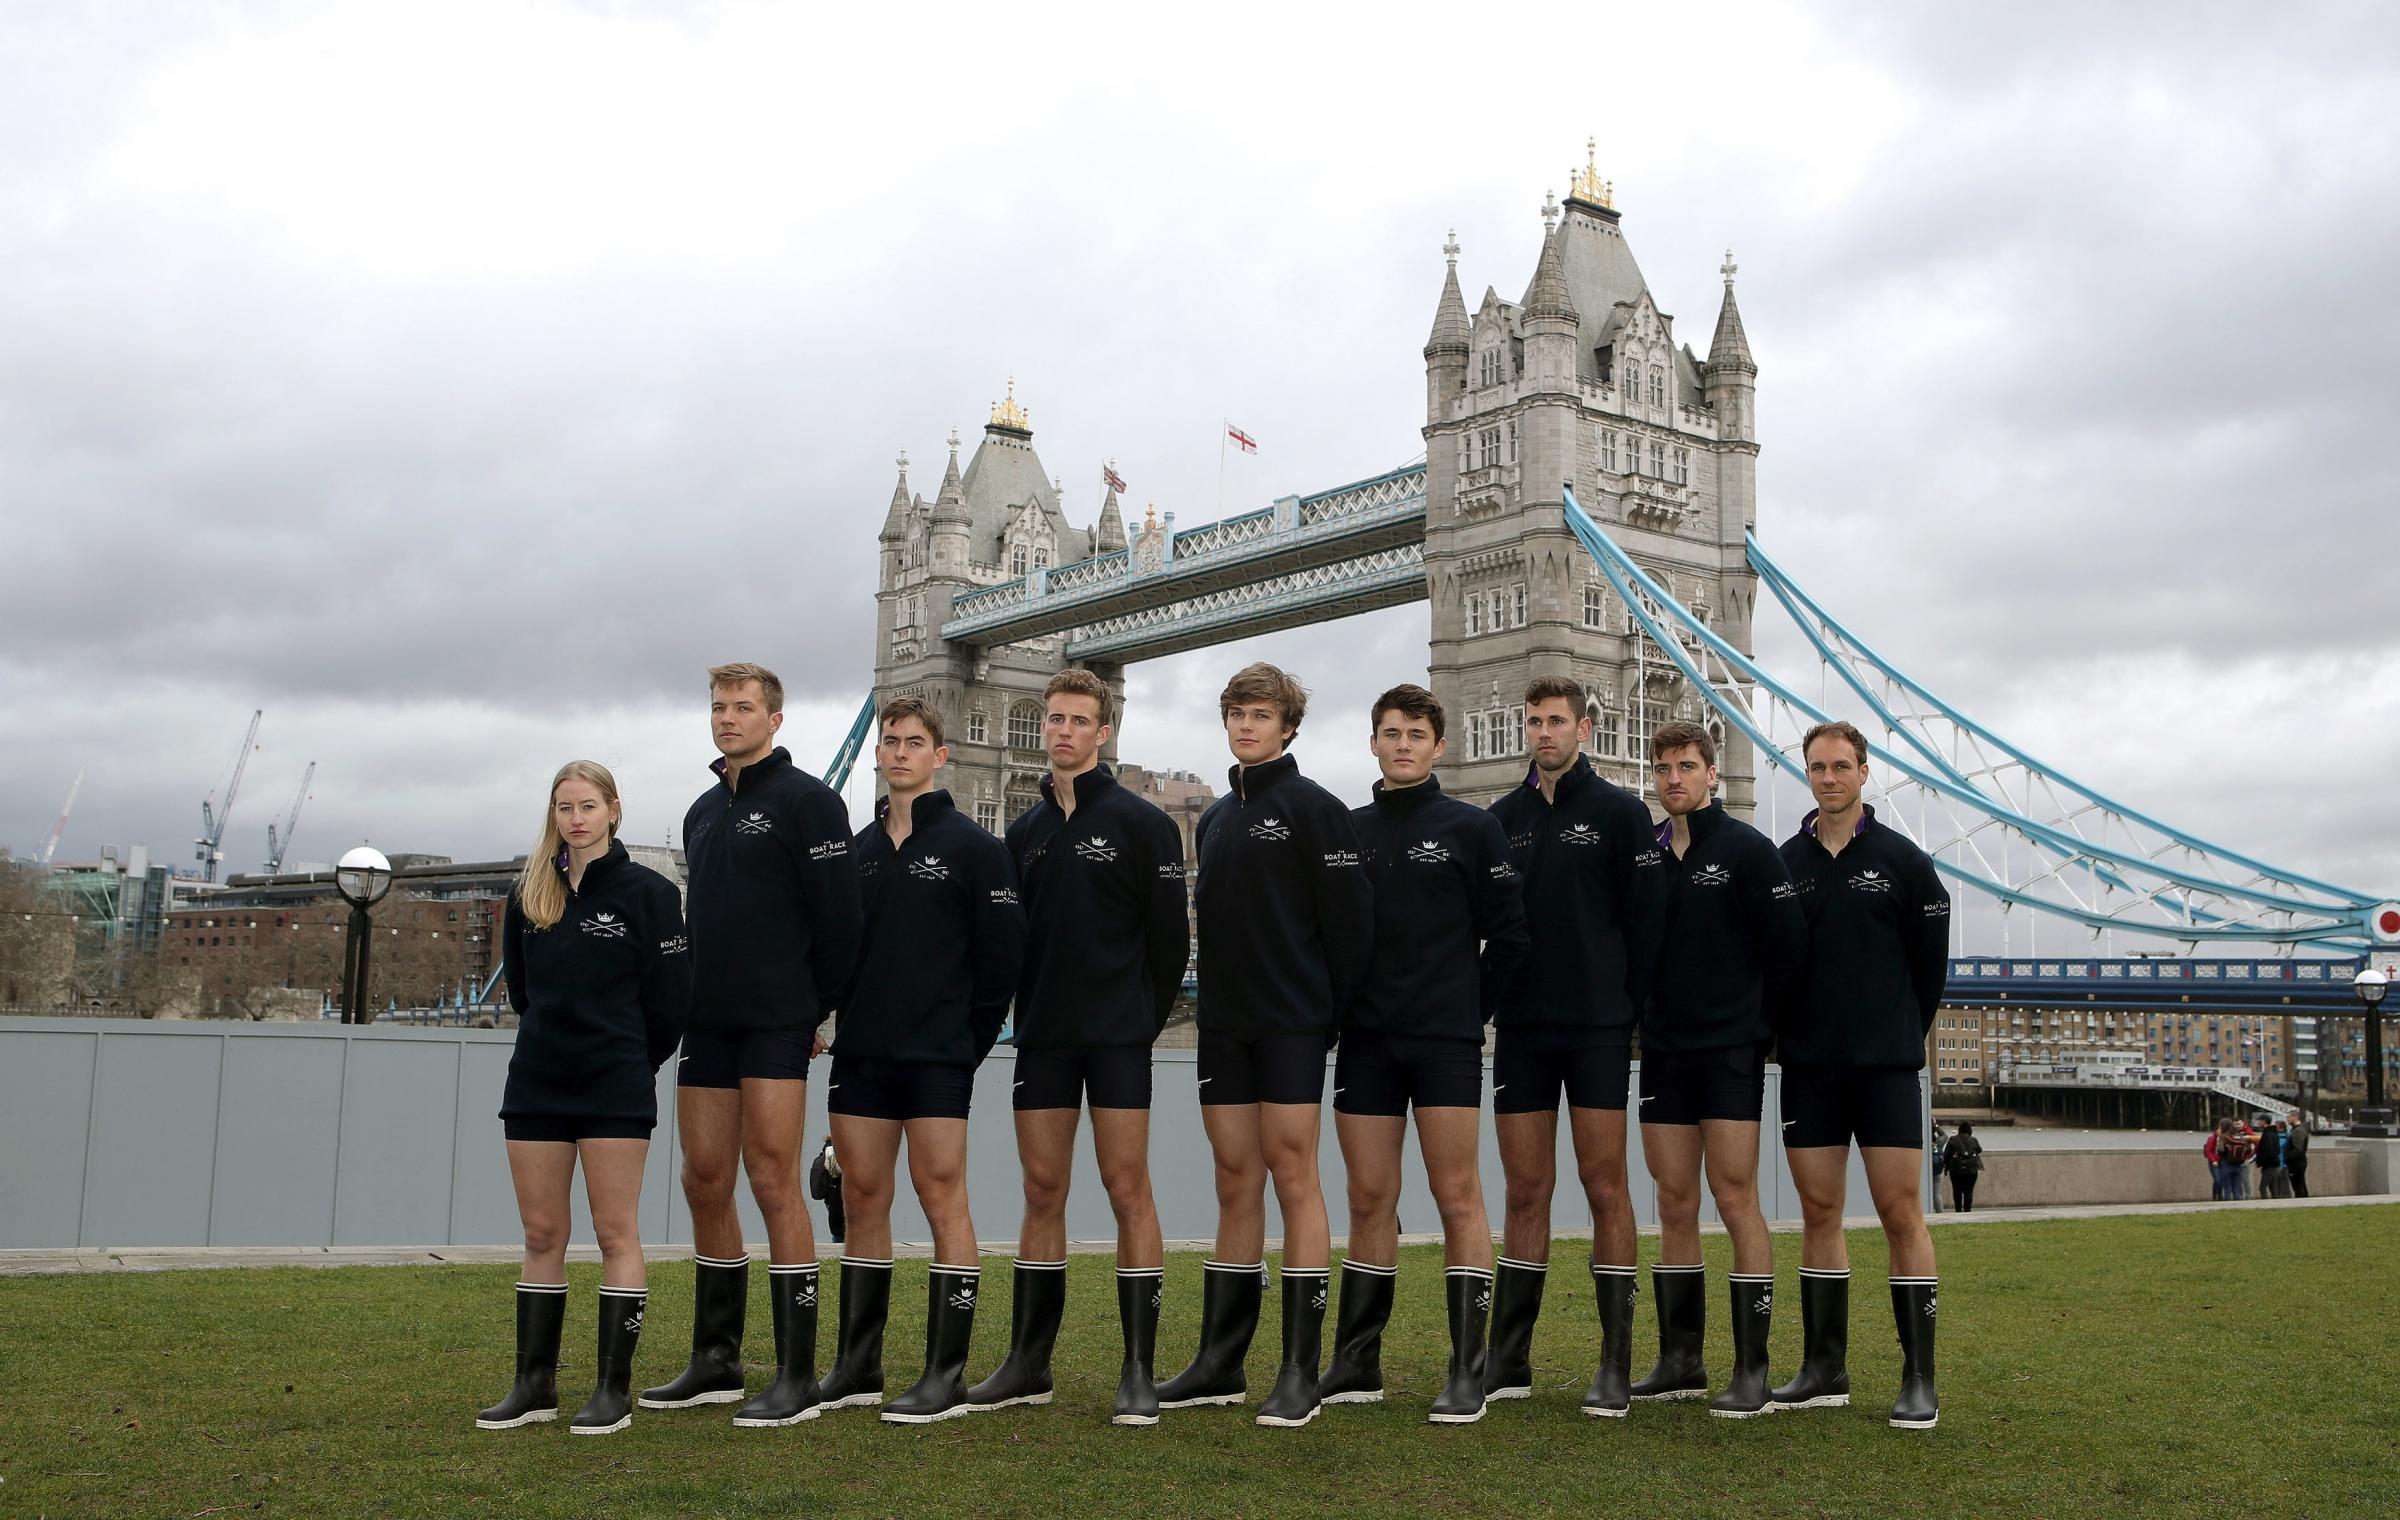 Oxford University's crew for next month's Boat Race. From left: Anna Carbery, Augustin Wambersie, Charlie Pearson, Felix Drinkall, Tobias Schroder, Benedict Aldous, Patrick Sullivan, Ben Landis and Achim Harzheim Picture: John Walton/PA Wire